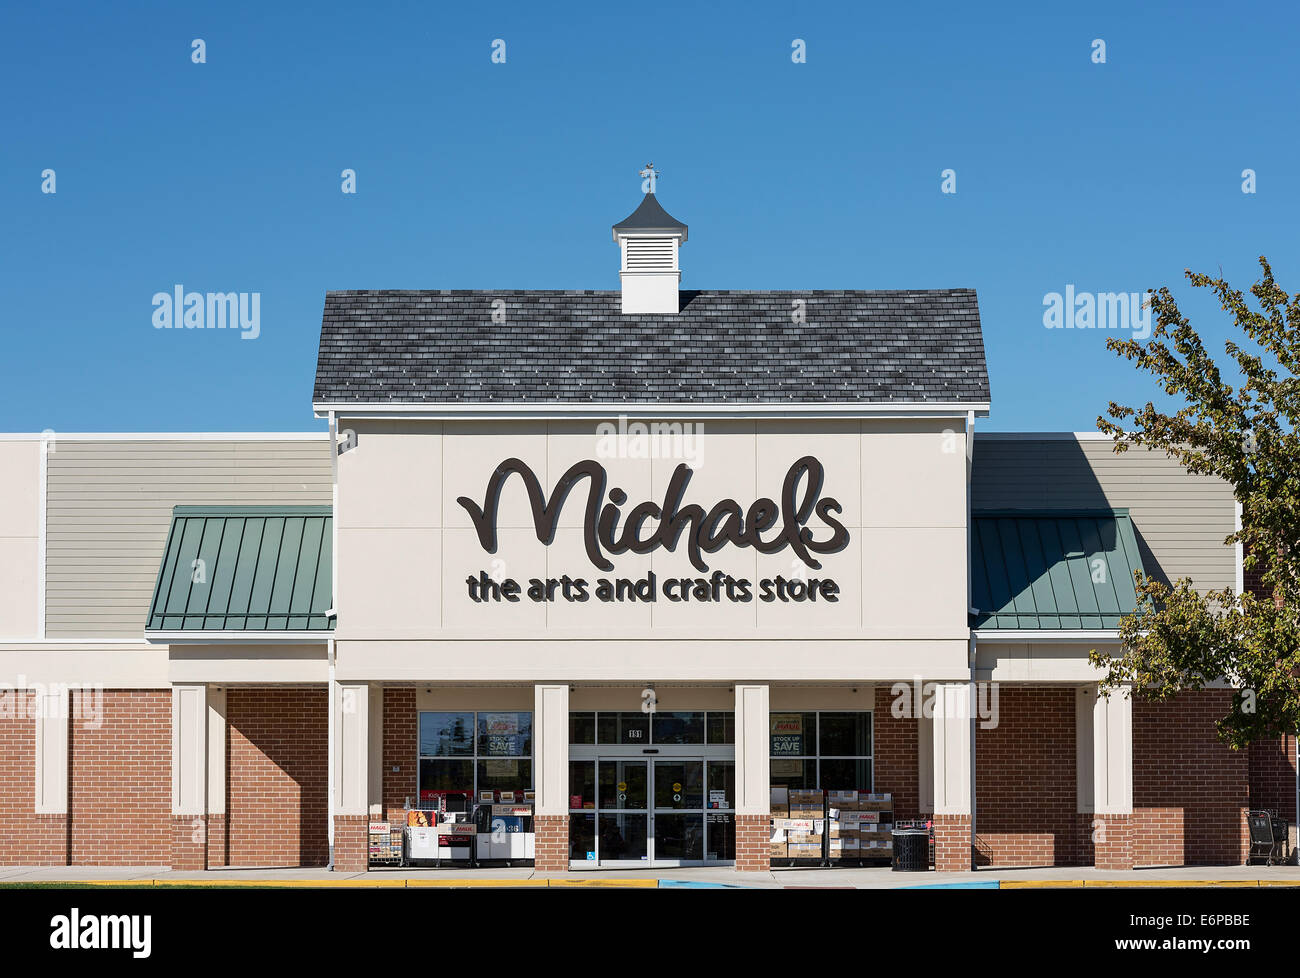 Michaels Arts and Crafts store exterior, Mt. Laural, New Jersey, USA - Stock Image